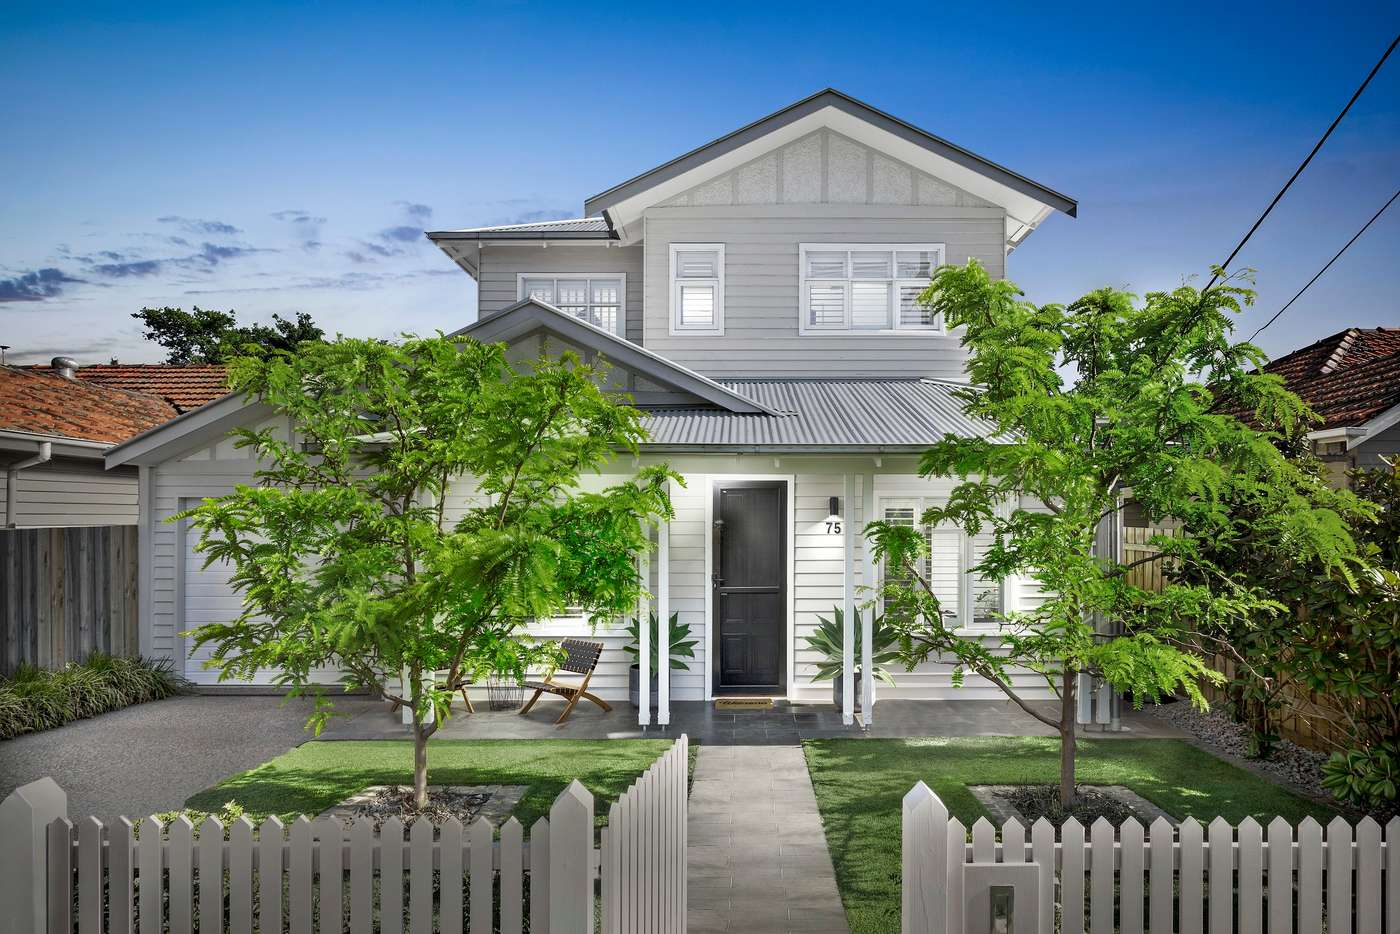 Main view of Homely house listing, 75 Woods Street, Newport, VIC 3015